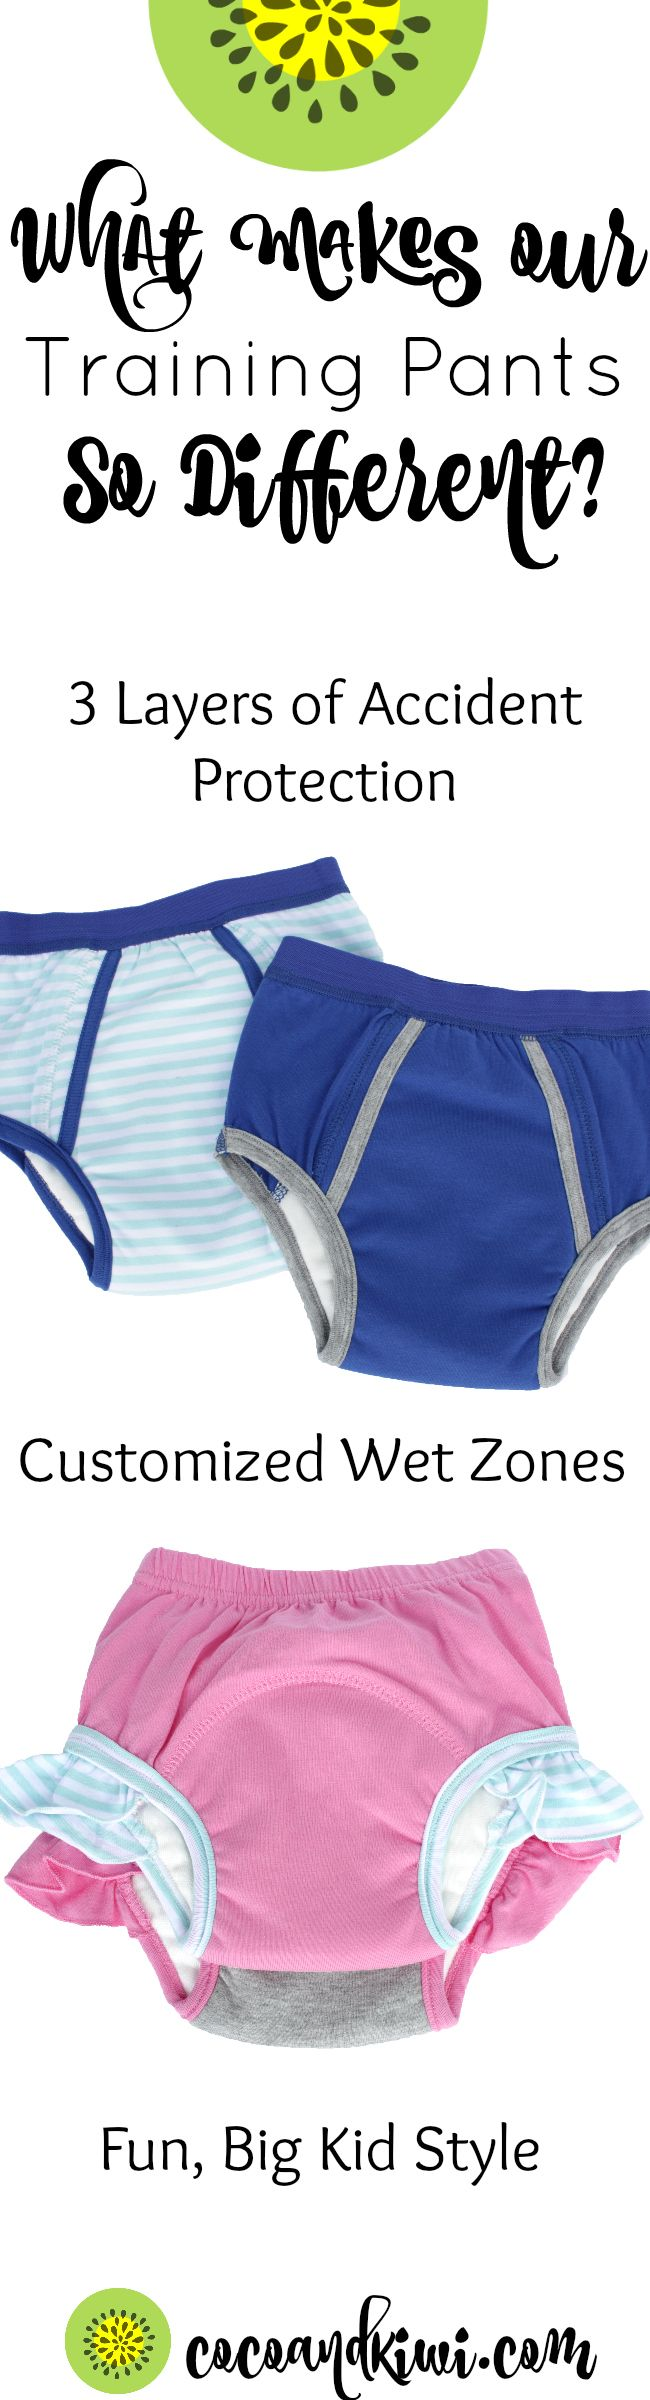 Getting ready to Potty Train? With so many trainers out there, what makes ours any different. With amazing absorbency and a style that kids can get excited about Coco + Kiwi Toddler Underwear will be your go to. We offer great products to simplify your messy life. Messy Baby, Happy Mom.